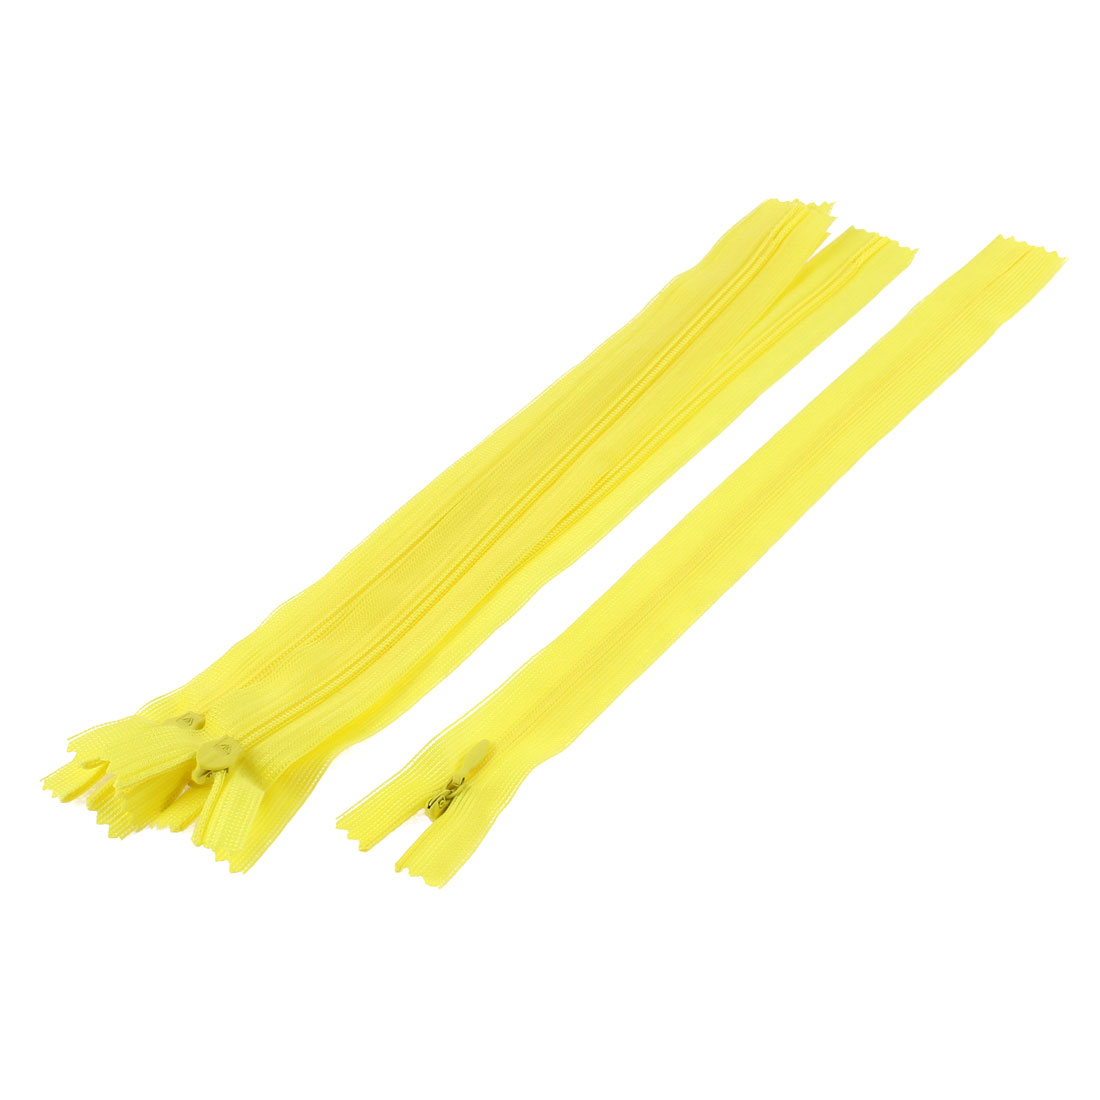 Clothes Invisible Nylon Coil Zippers Tailor Sewing Craft Tool Yellow 25cm 5 Pcs